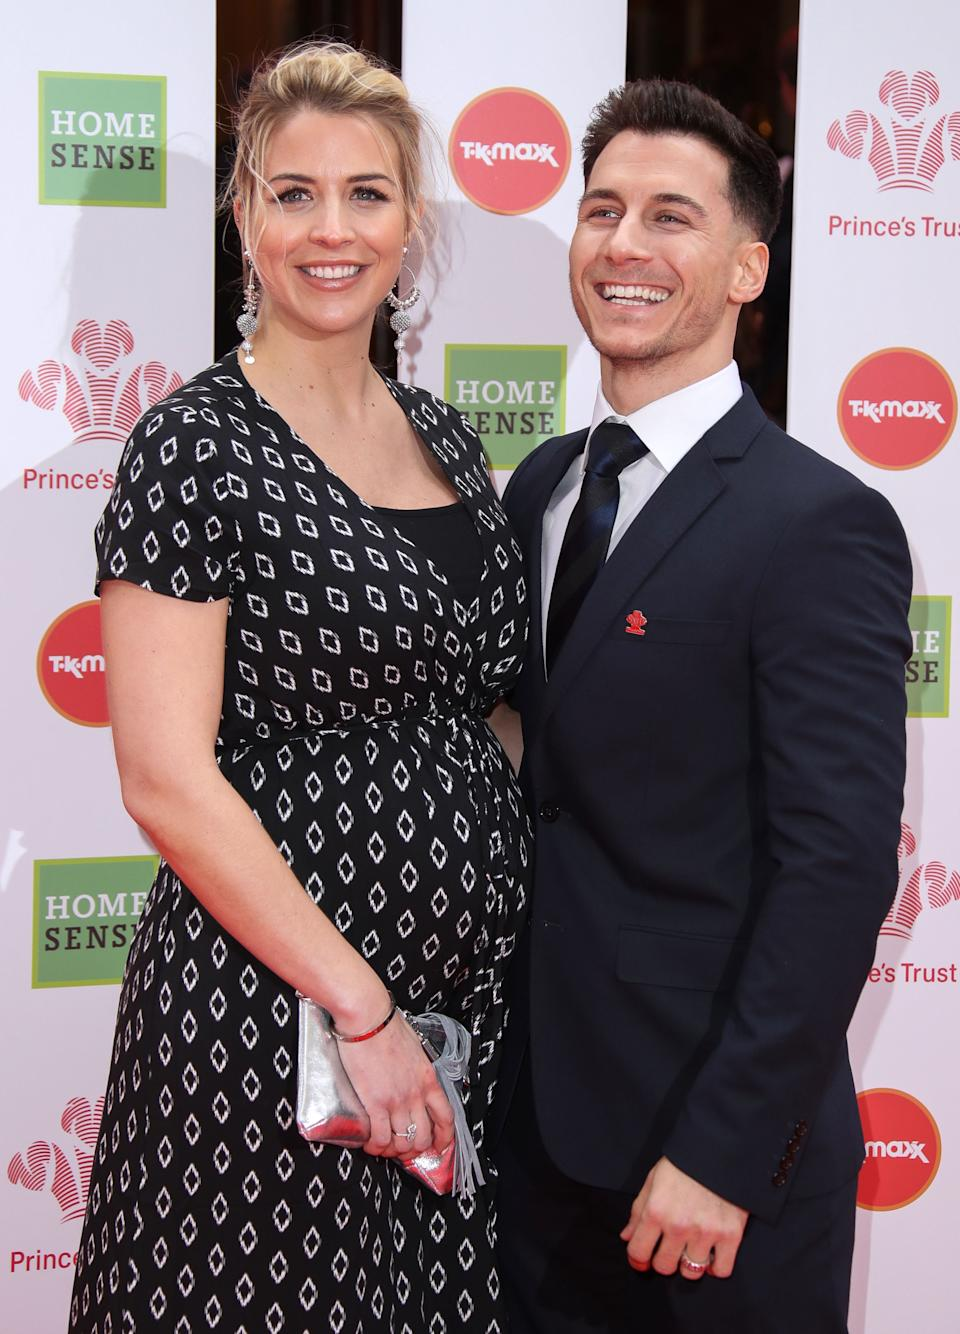 LONDON, ENGLAND - MARCH 13: Gemma Atkinson and Gorka Marquez attend The Prince's Trust, TKMaxx and Homesense Awards at The Palladium on March 13, 2019 in London, England. (Photo by Mike Marsland/ Mike Marsland/WireImage)